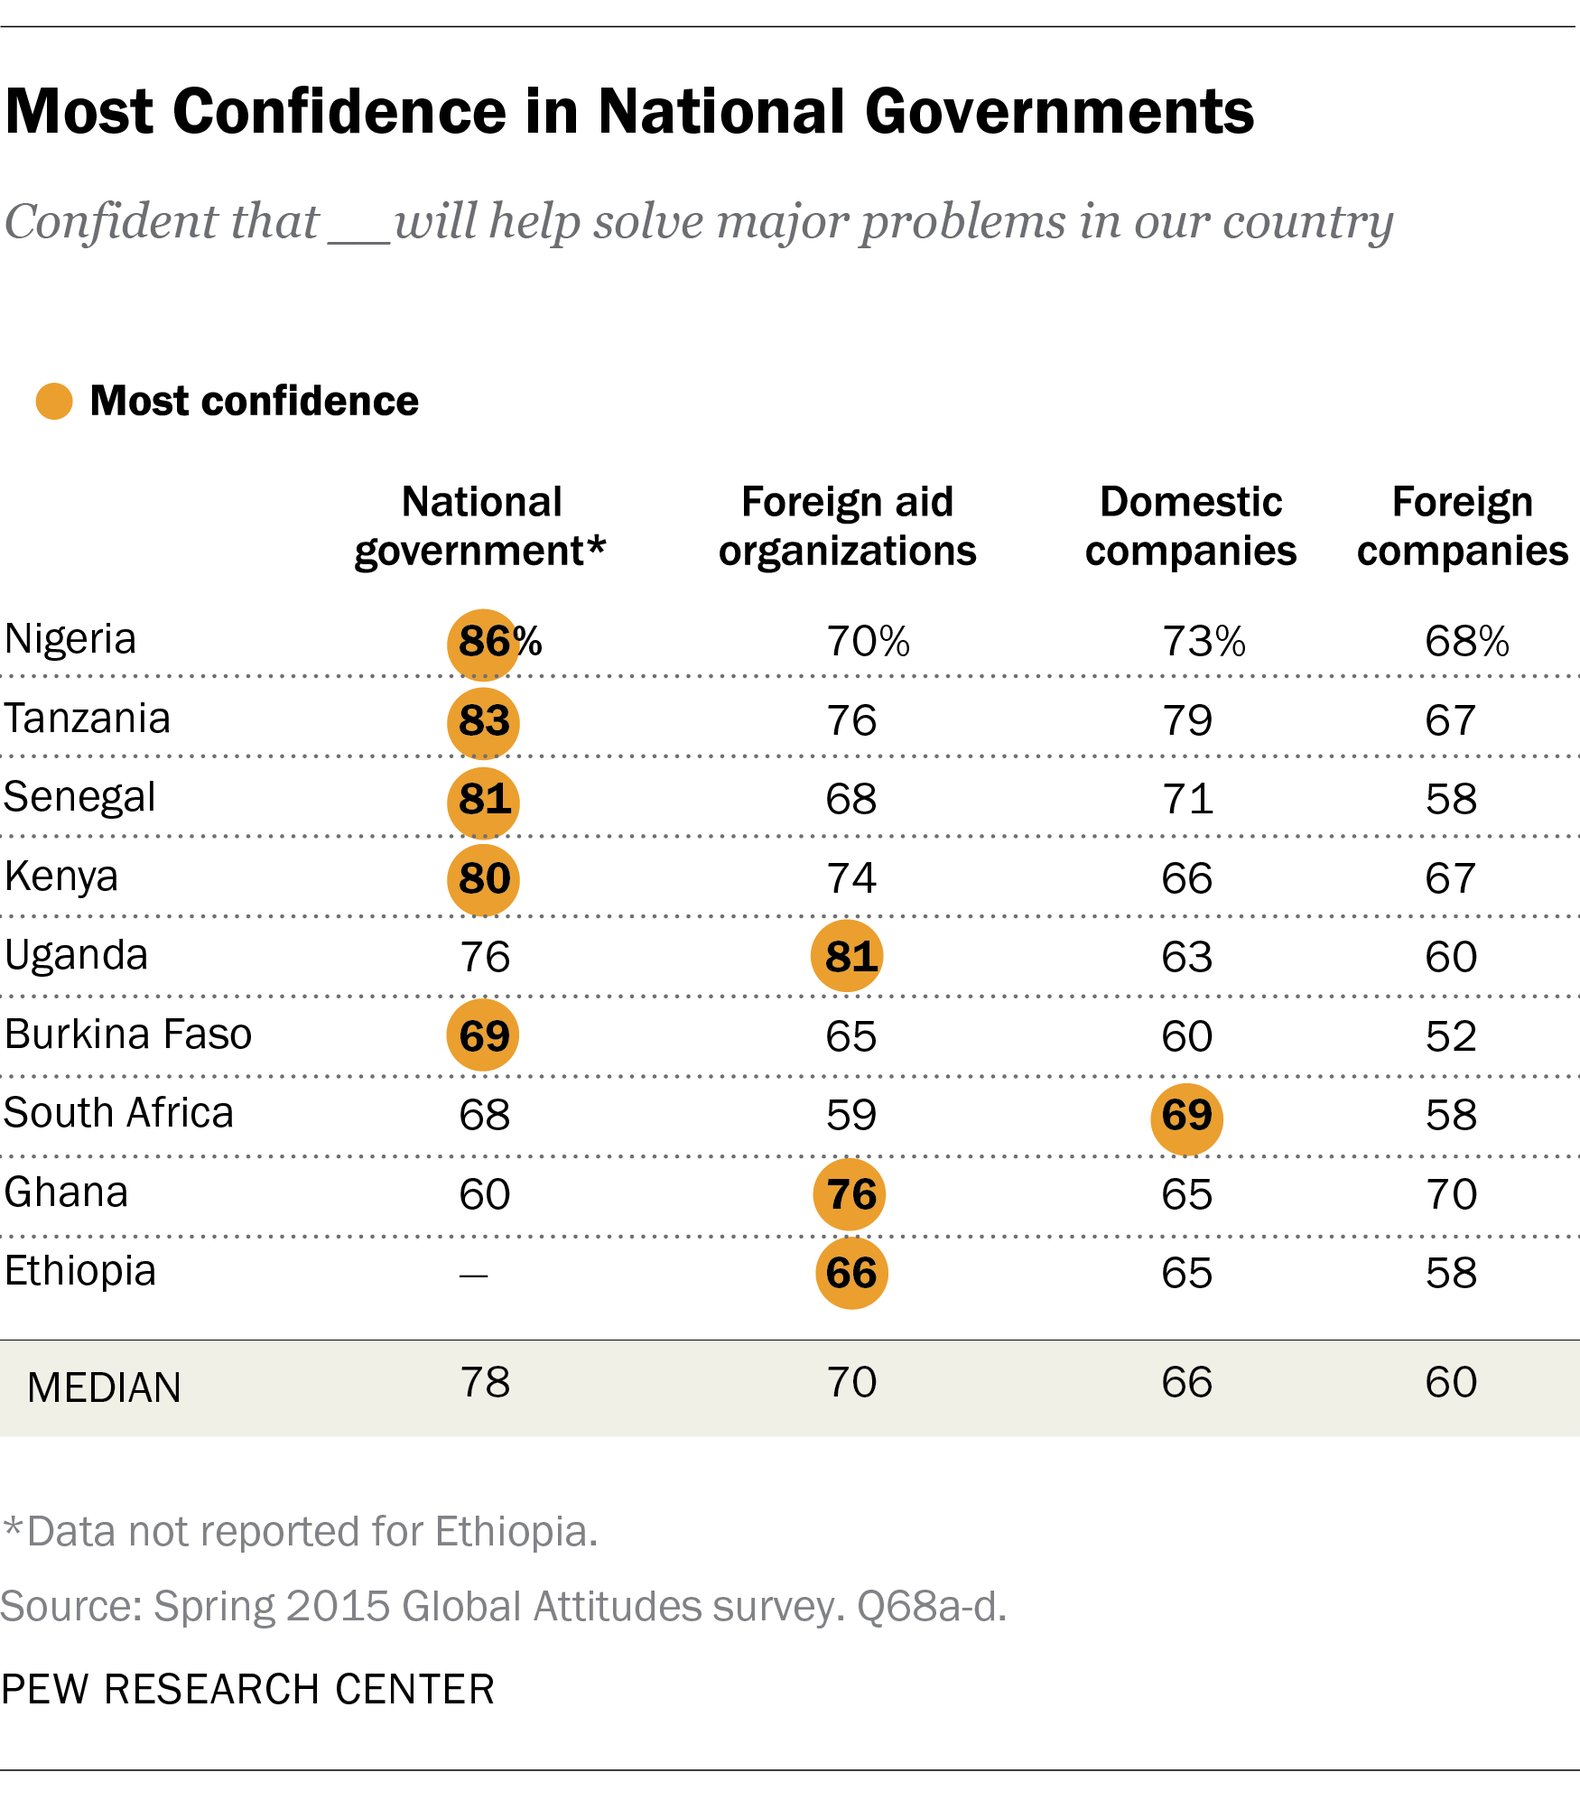 Most Confidence in National Governments